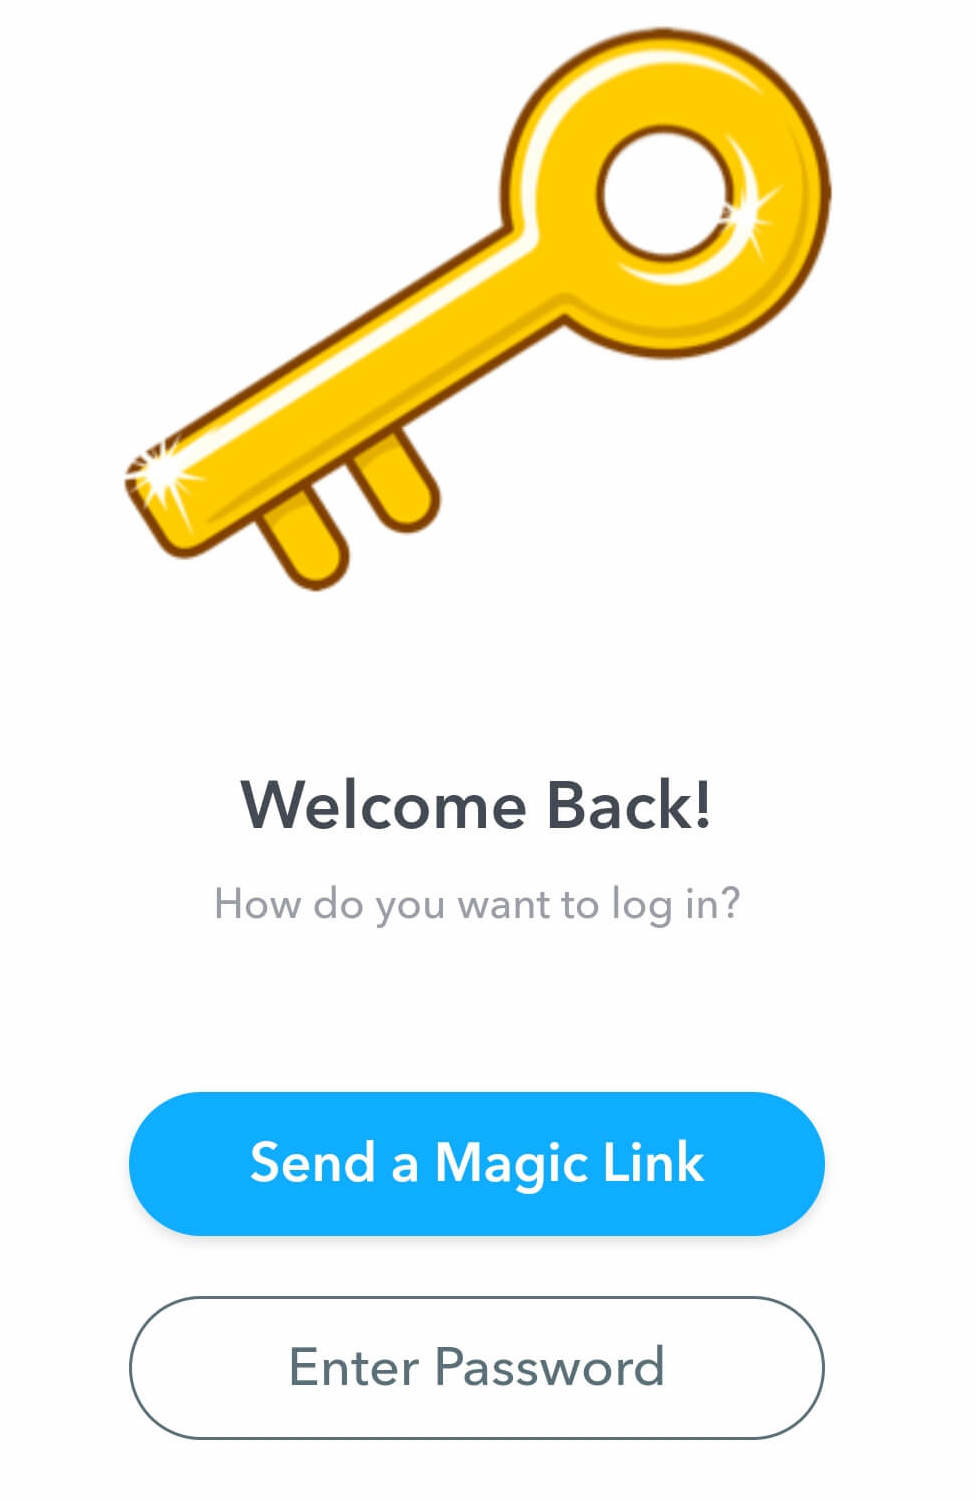 a blue button to Send a Magic Link is located in the lower half of the screen